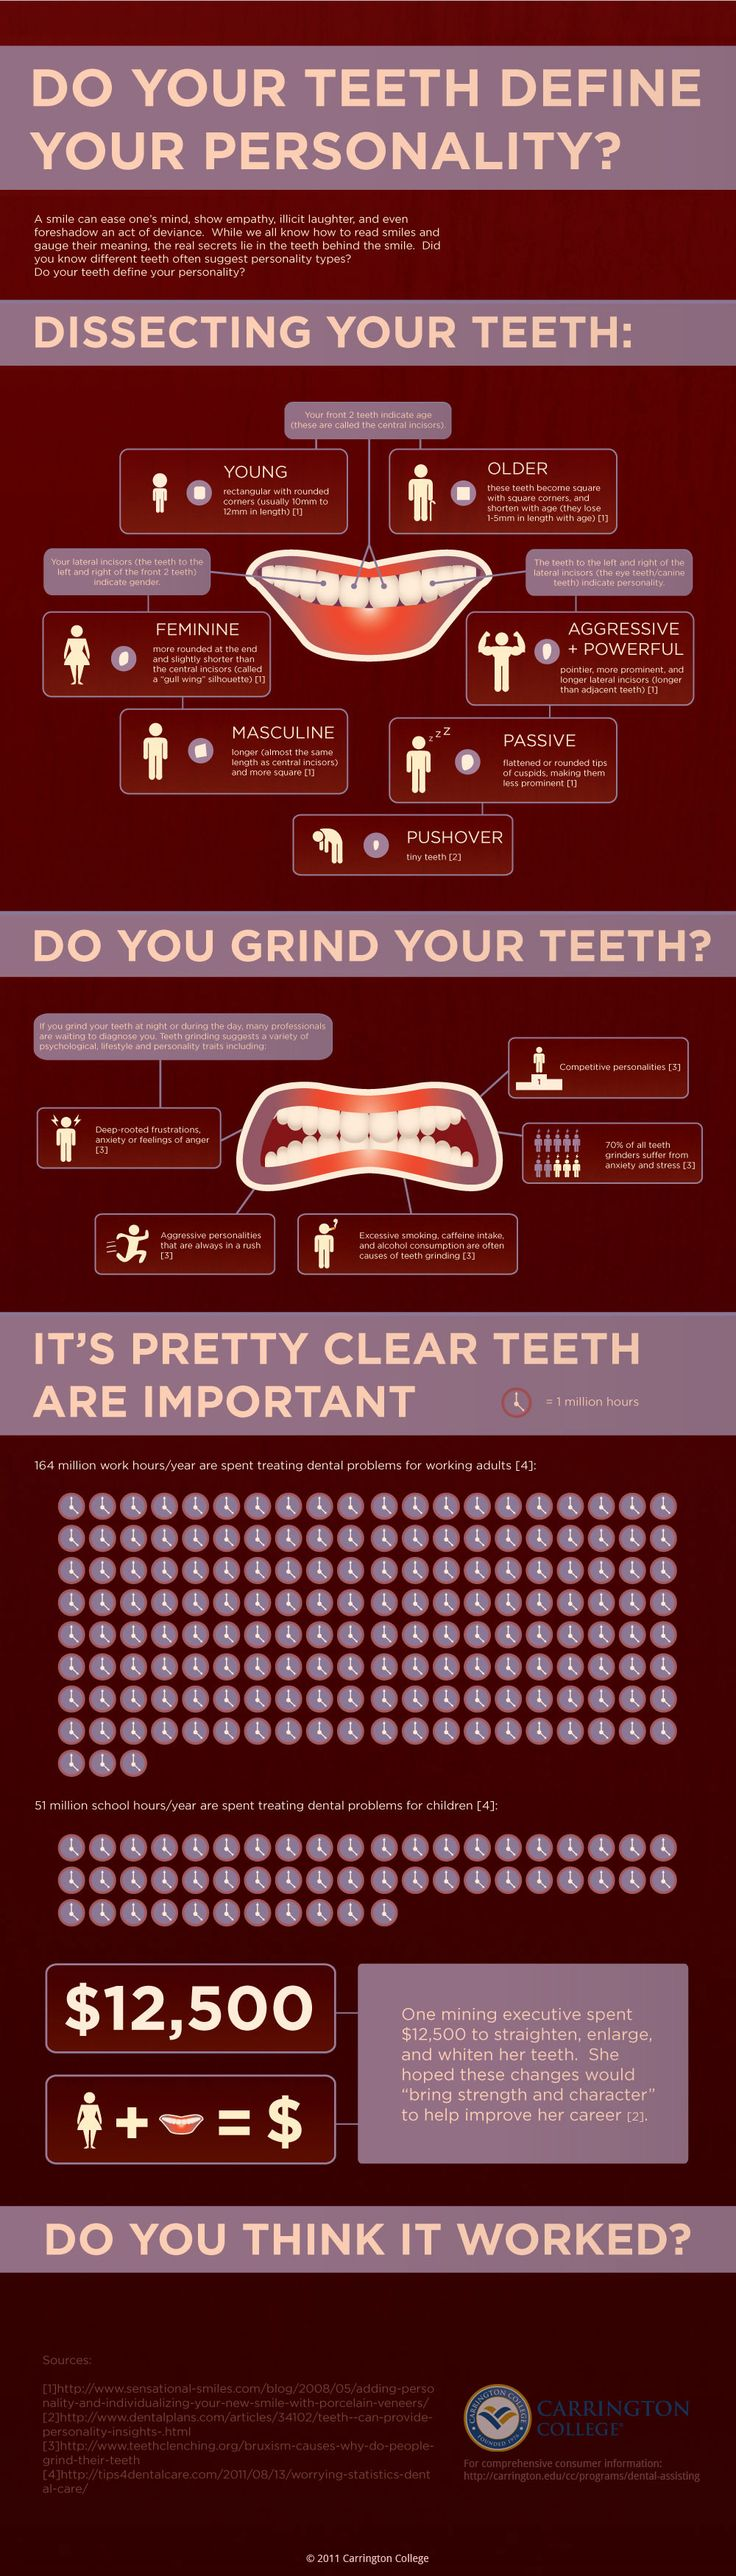 Can Your Teeth Be Related To Your Personality?